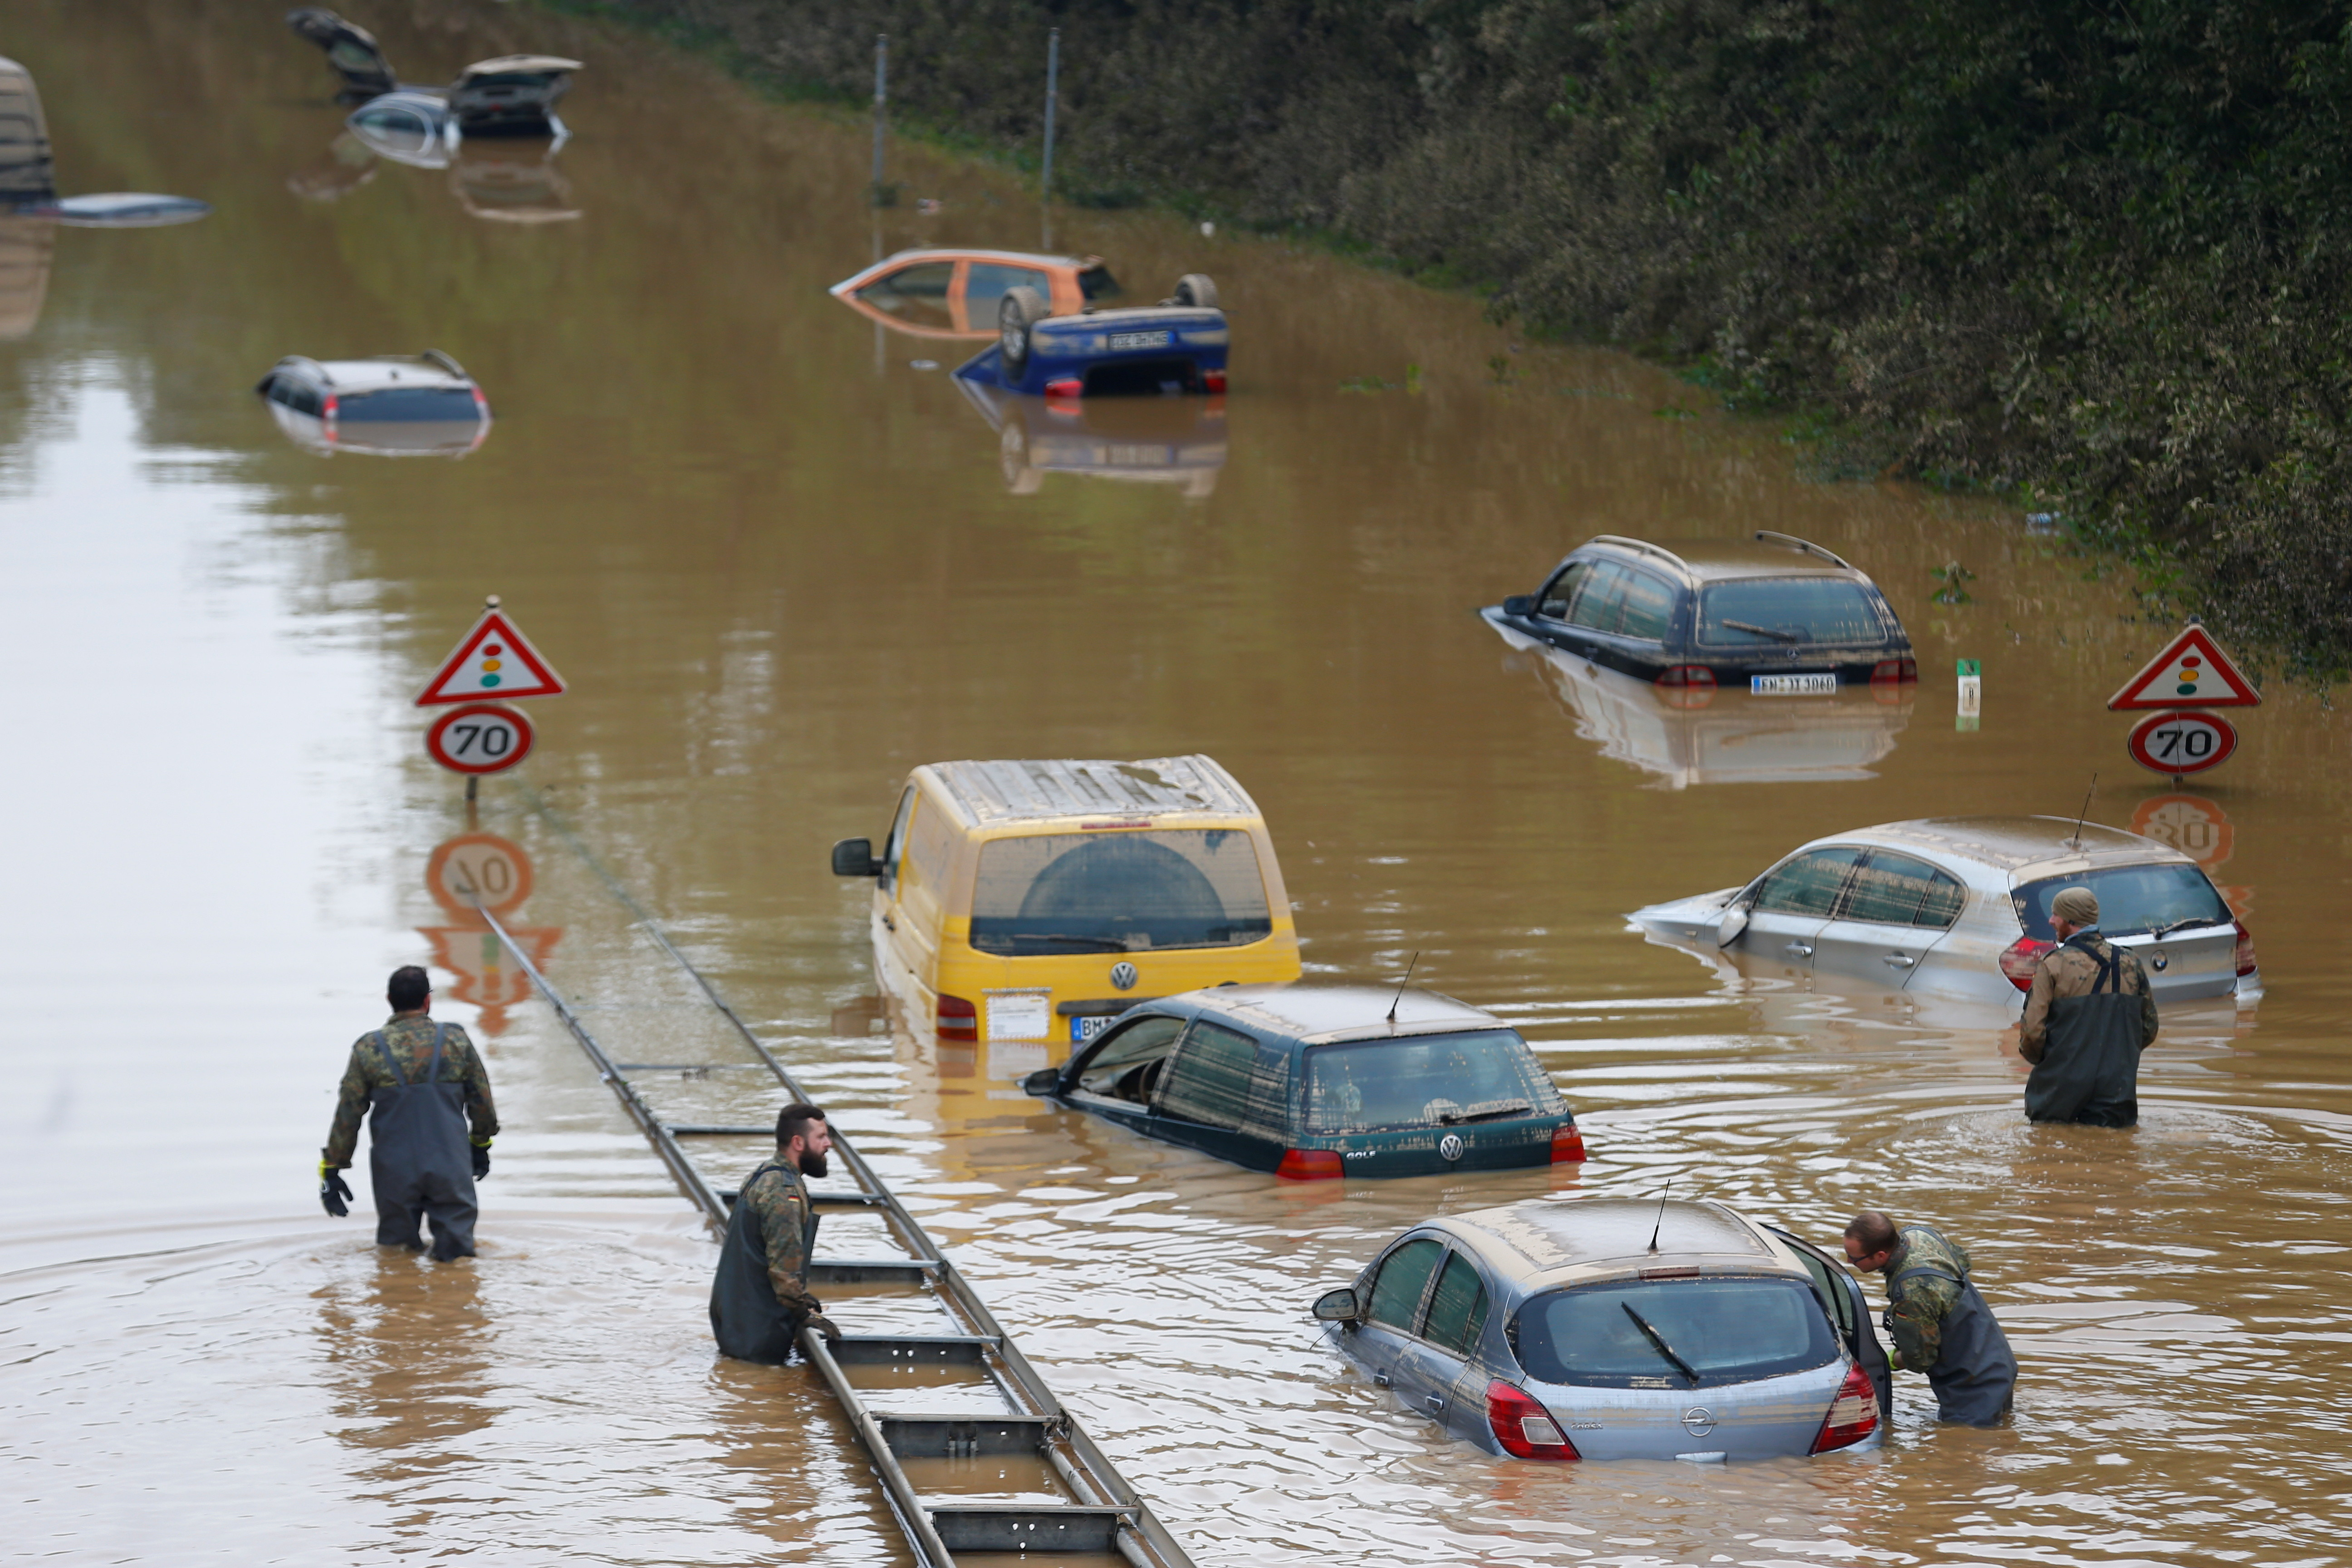 Members of the Bundeswehr forces, surrounded by partially submerged cars, wade through the flood water following heavy rainfalls in Erftstadt-Blessem, Germany